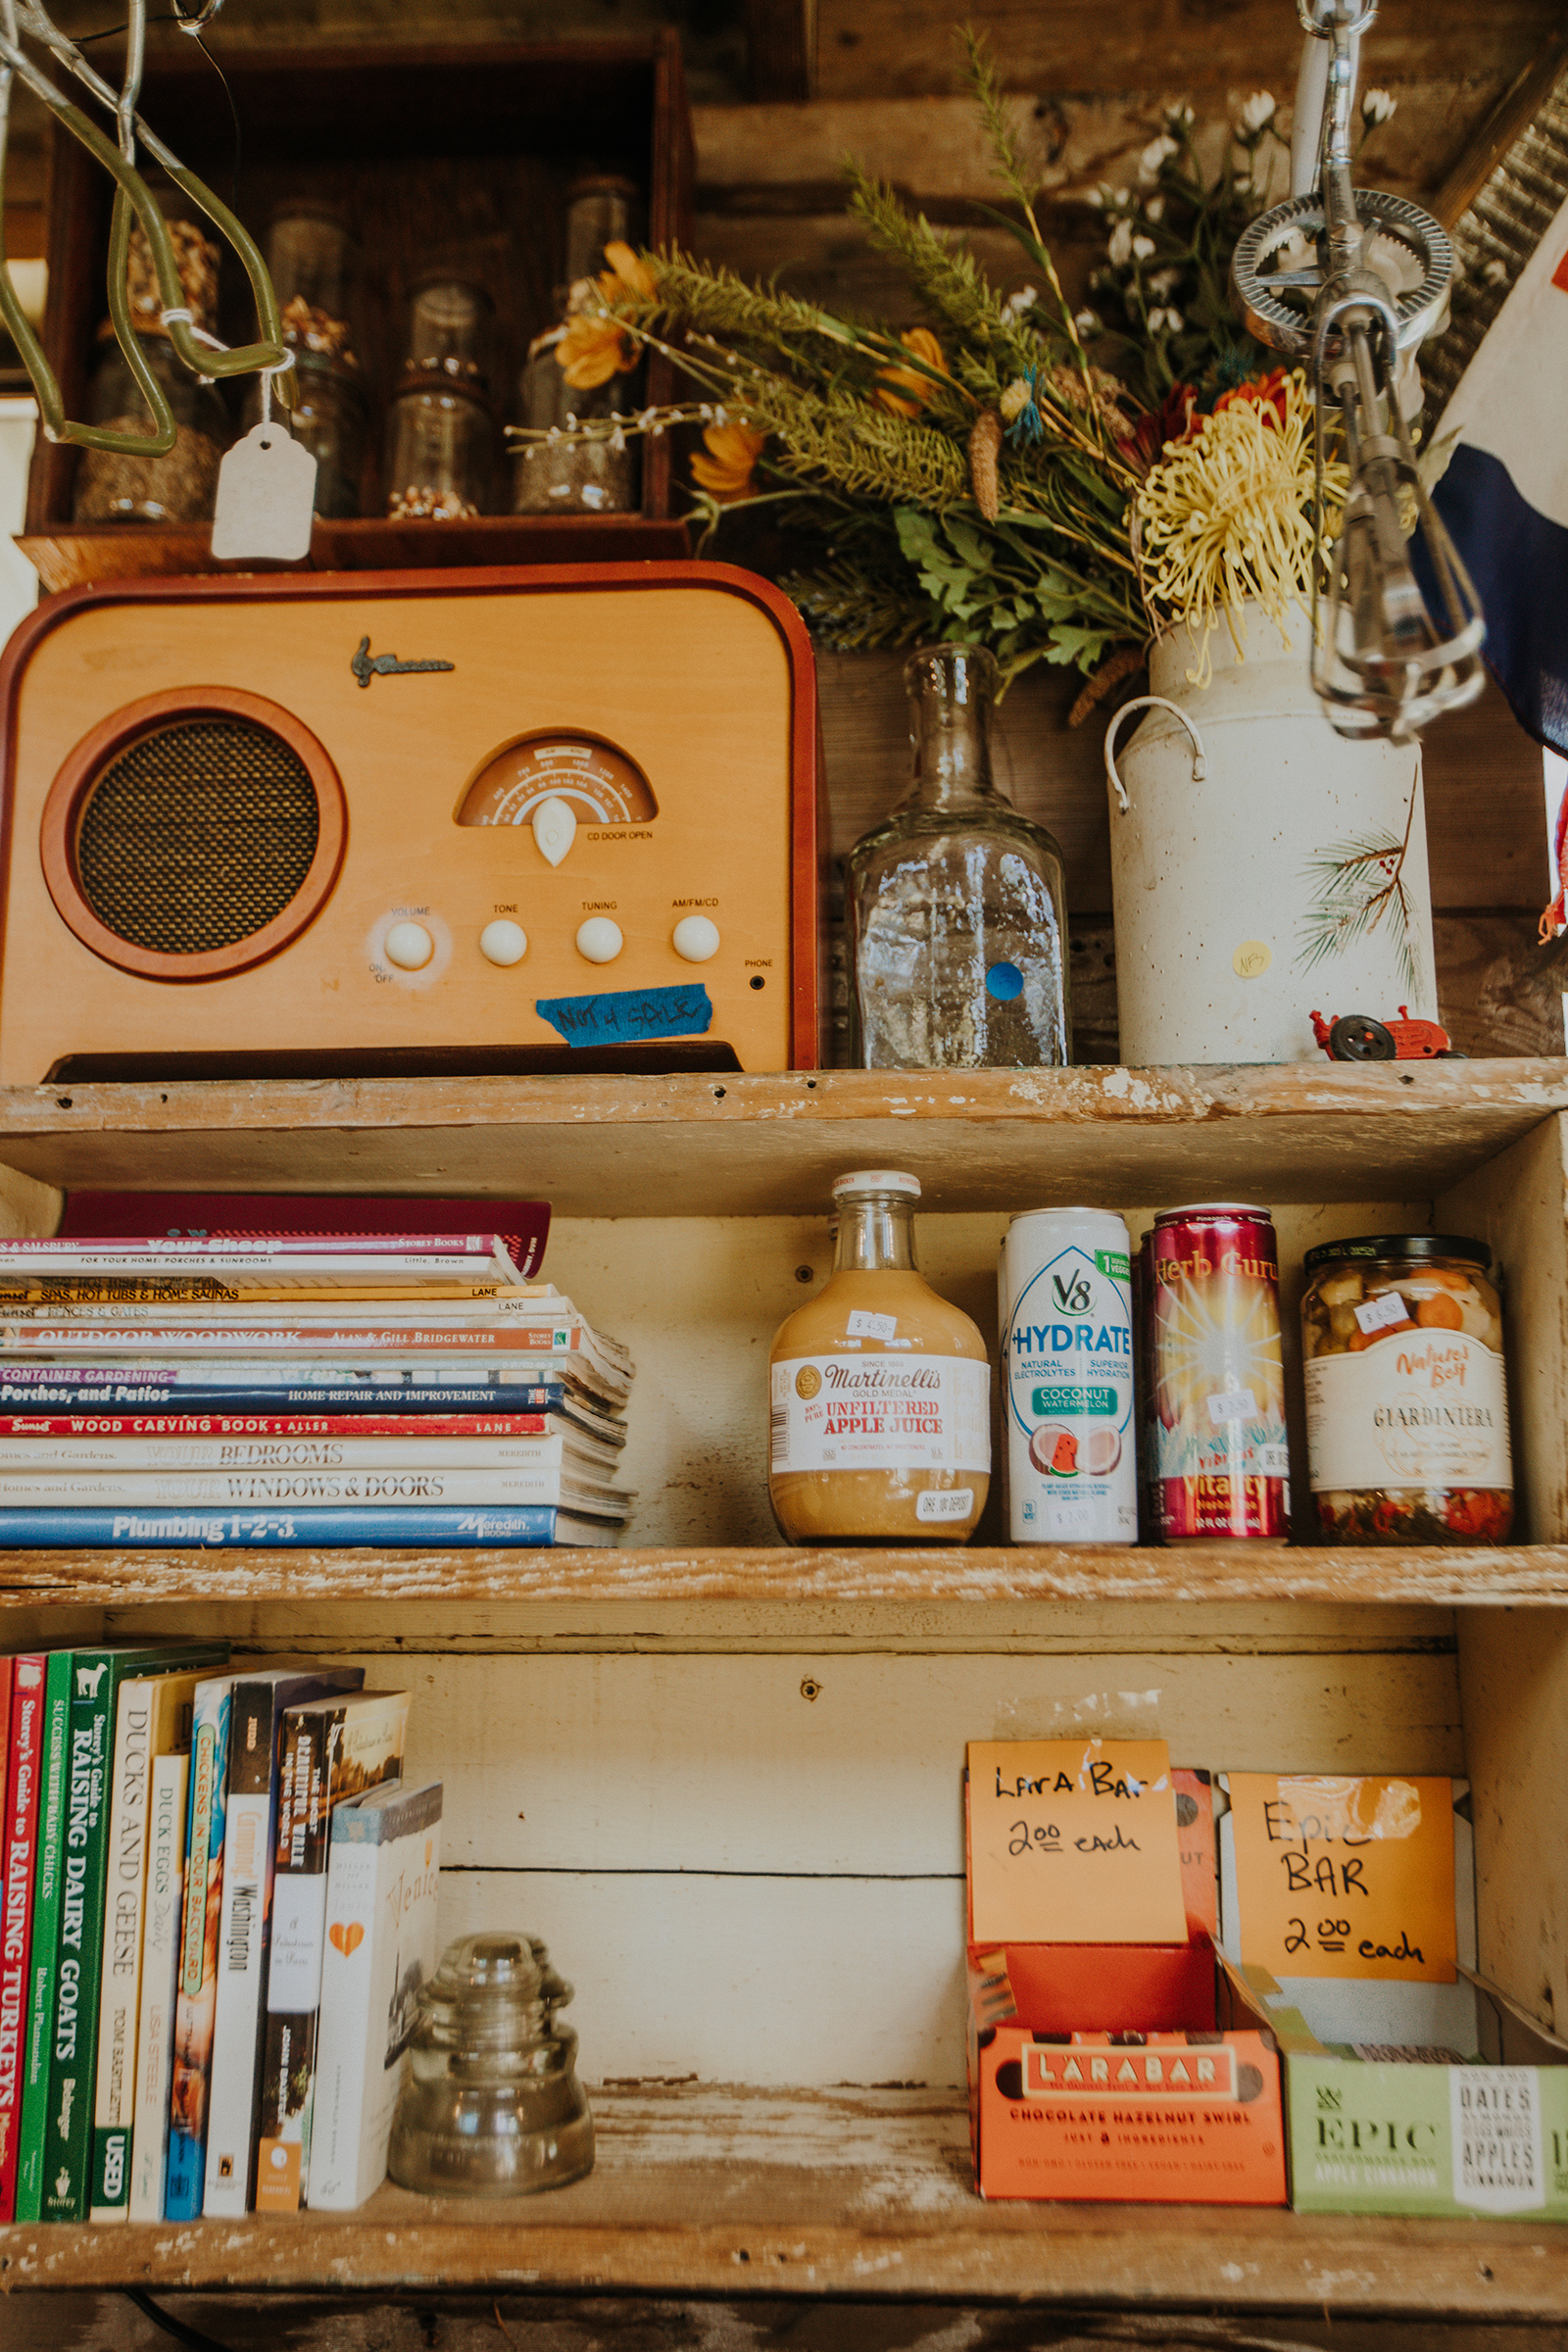 A vintage radio, books and shelf-stable goods sit on the shelves.